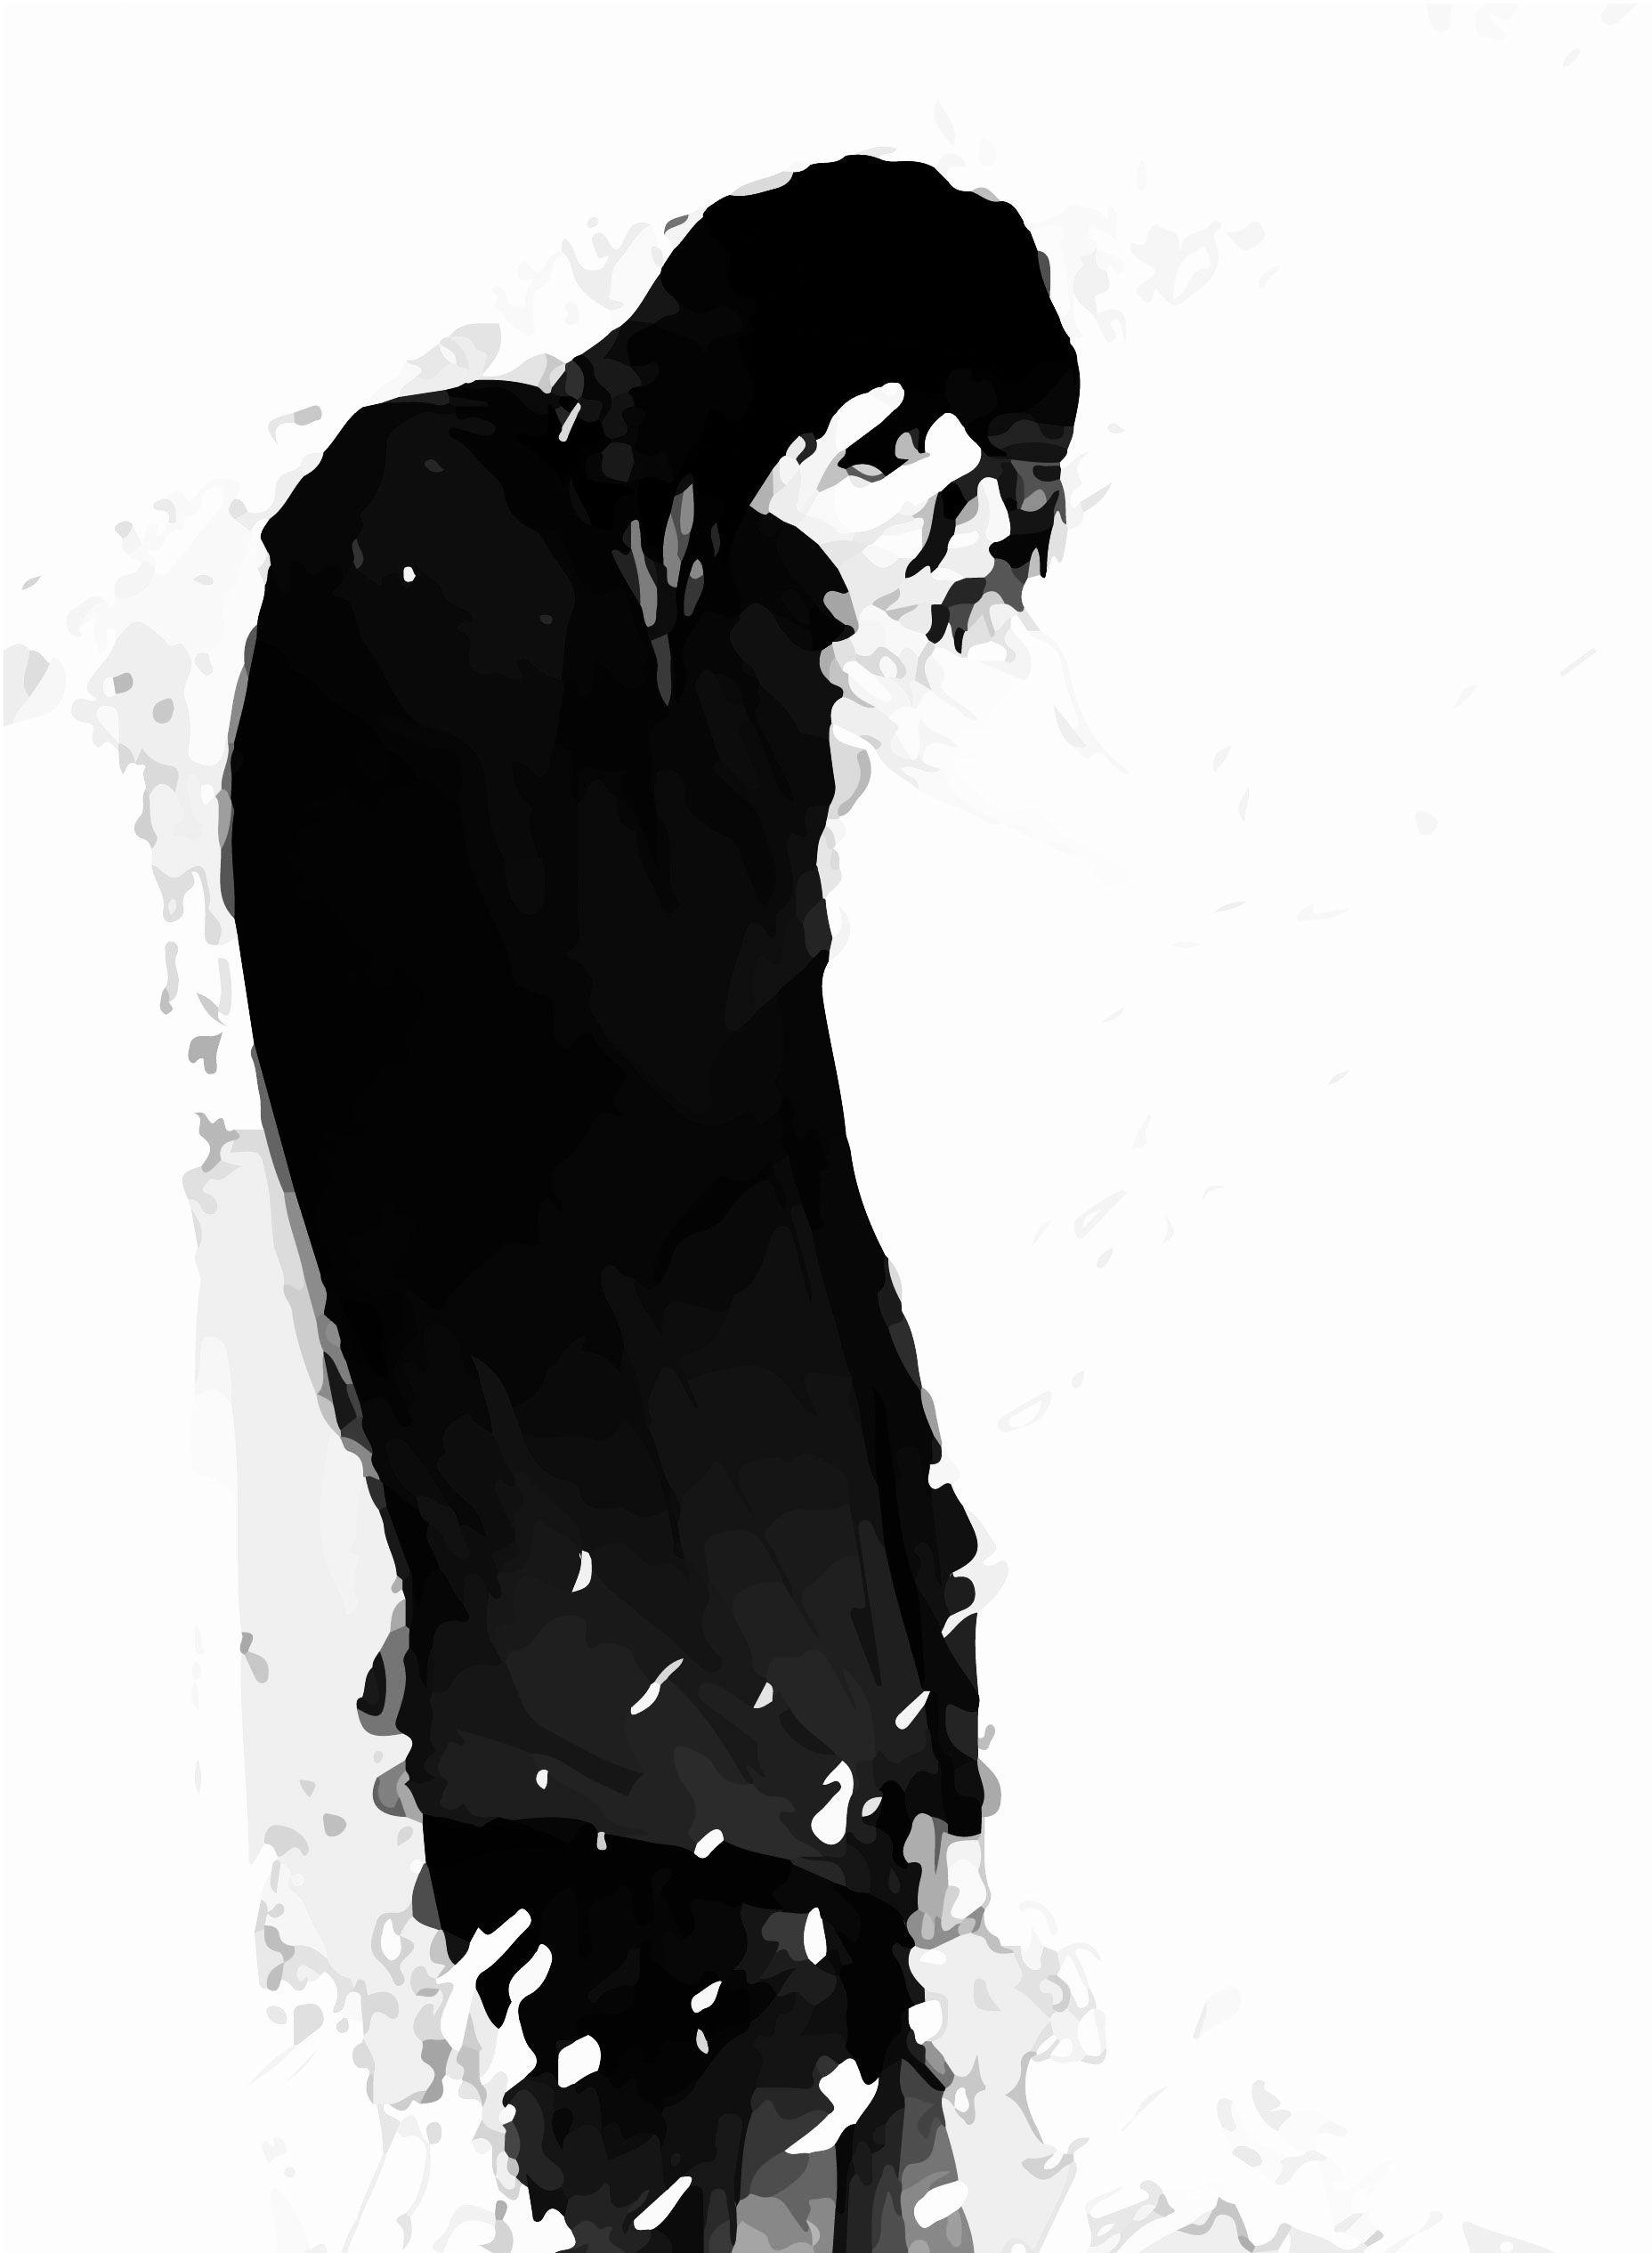 Sad anime boy wallpapers wallpaper cave - Sad anime wallpaper ...